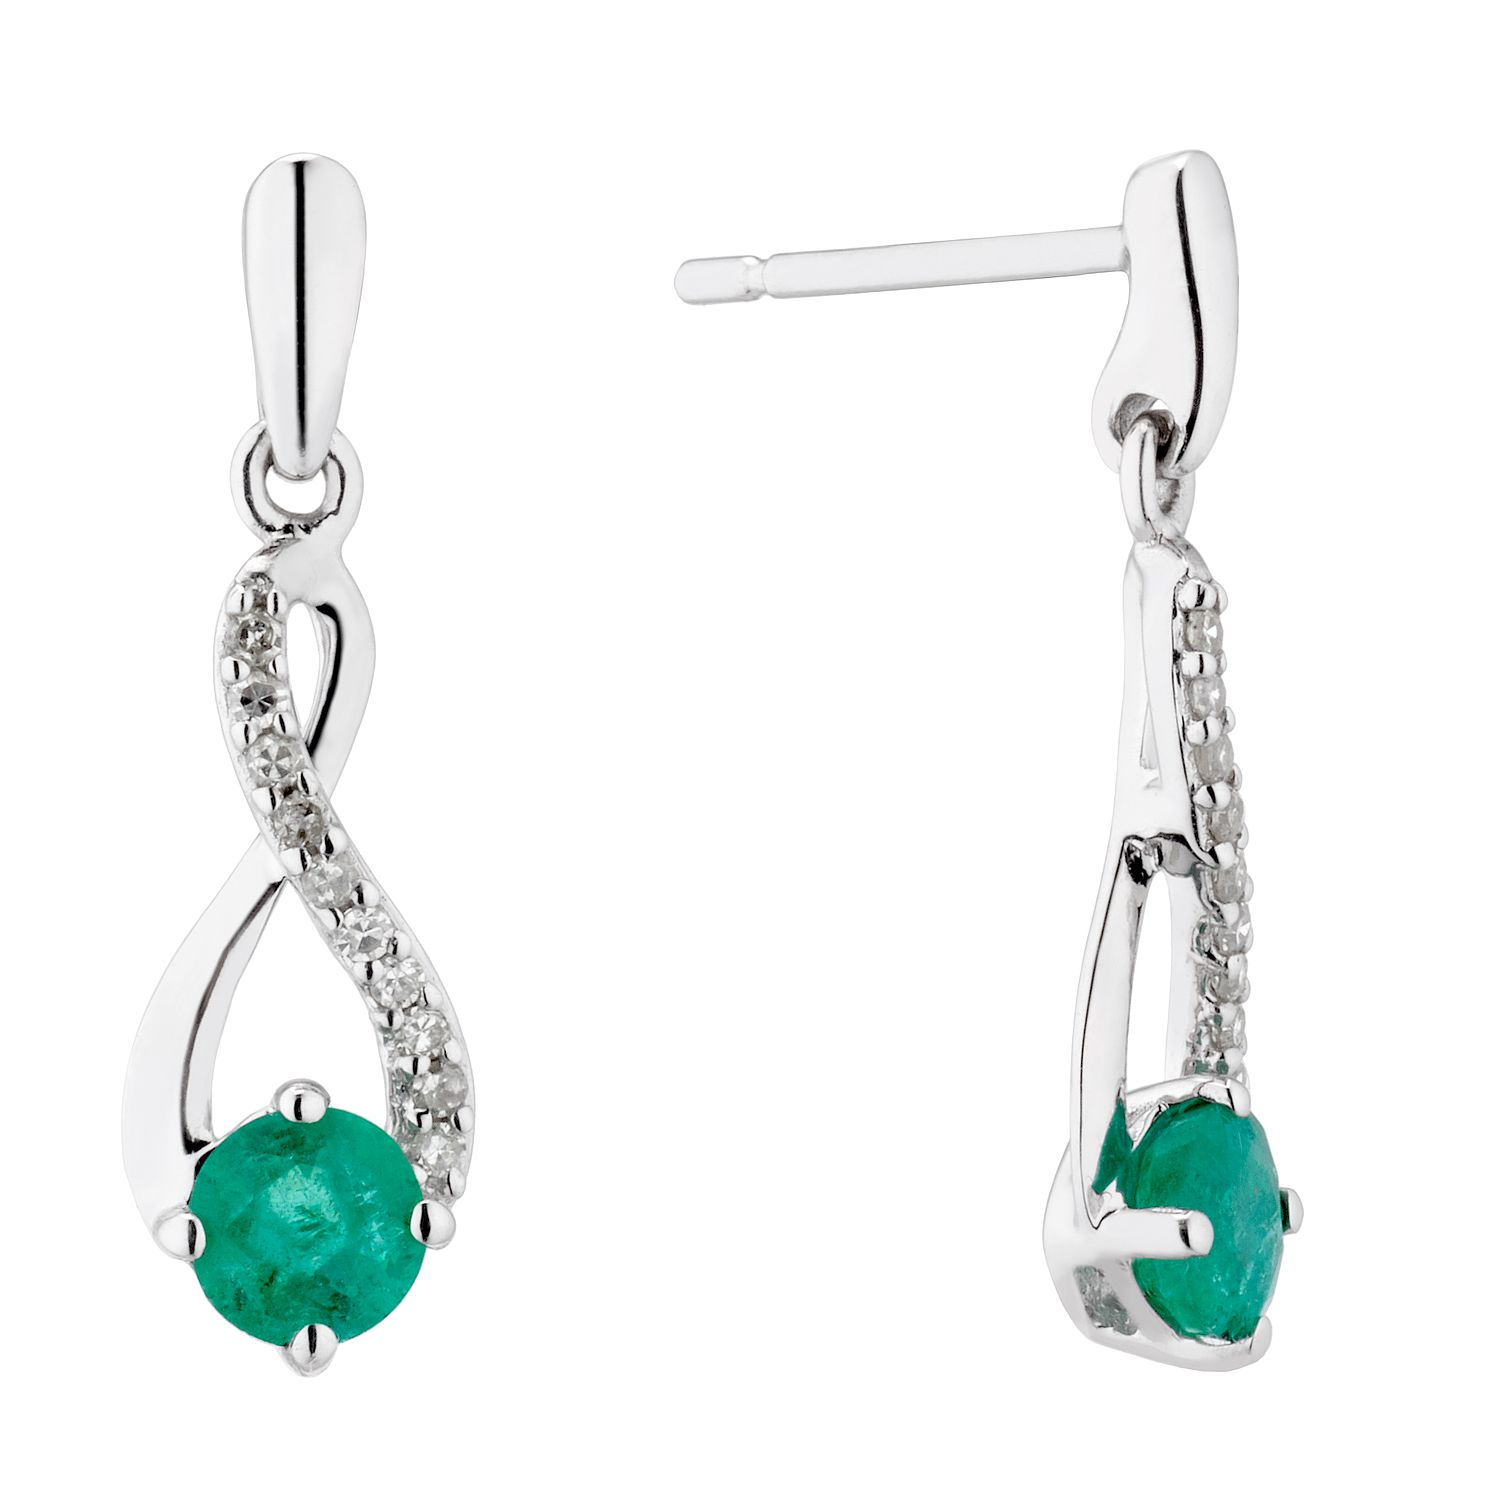 9ct White Gold Emerald & Diamond Infinity Stud Earrings - Product number 5173361